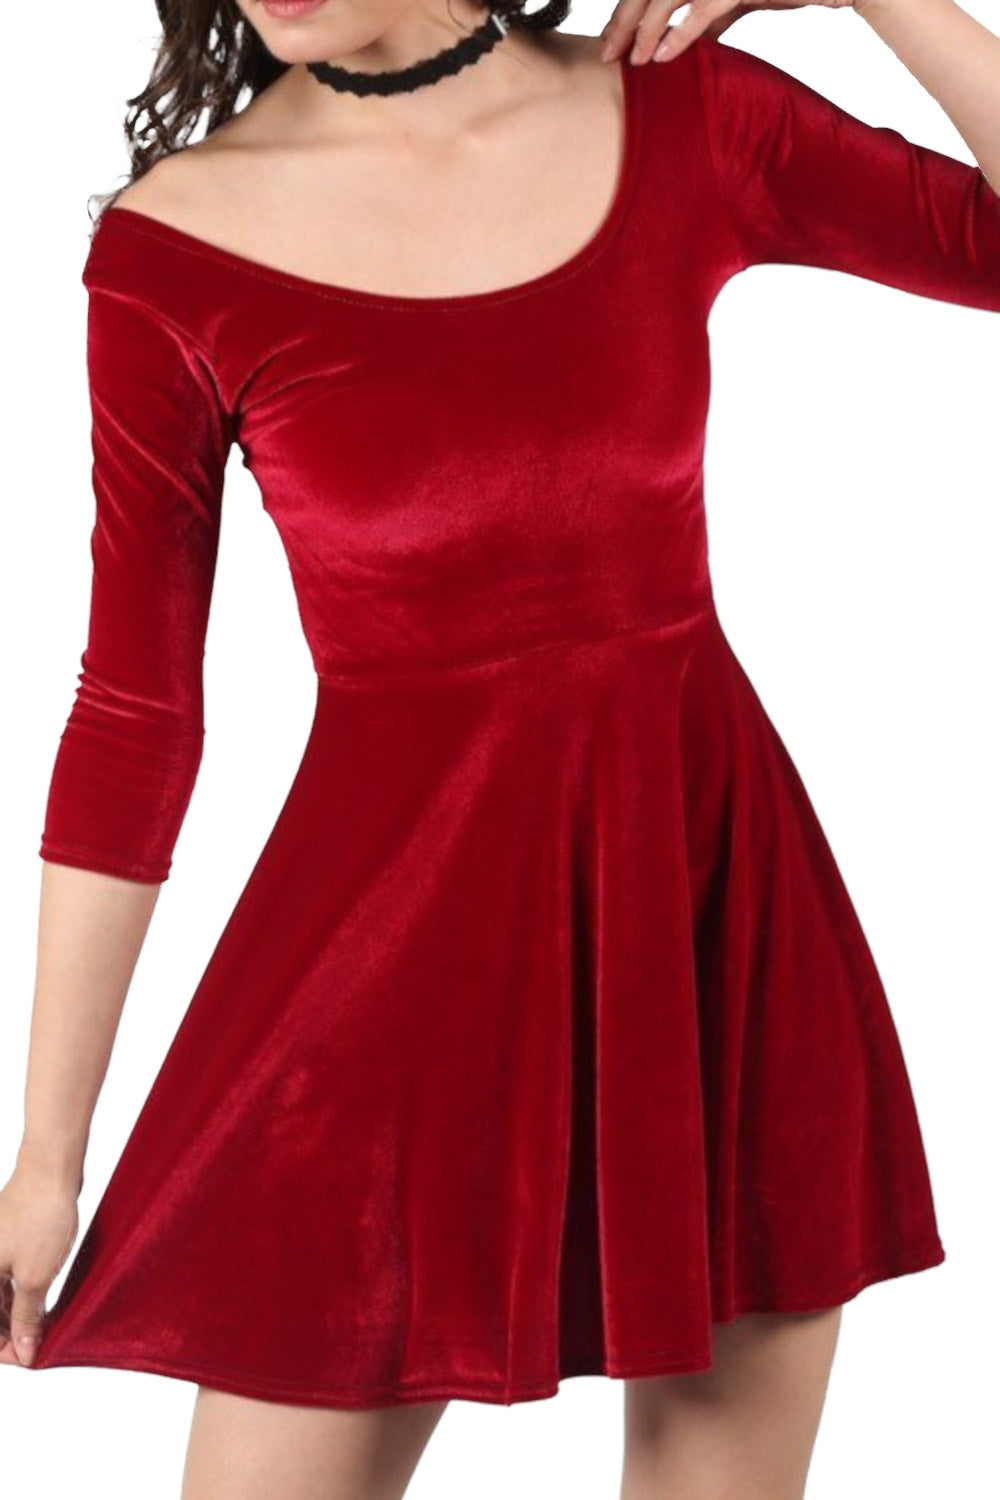 3/4 Sleeve Velvet Skater Dress in Wine Red